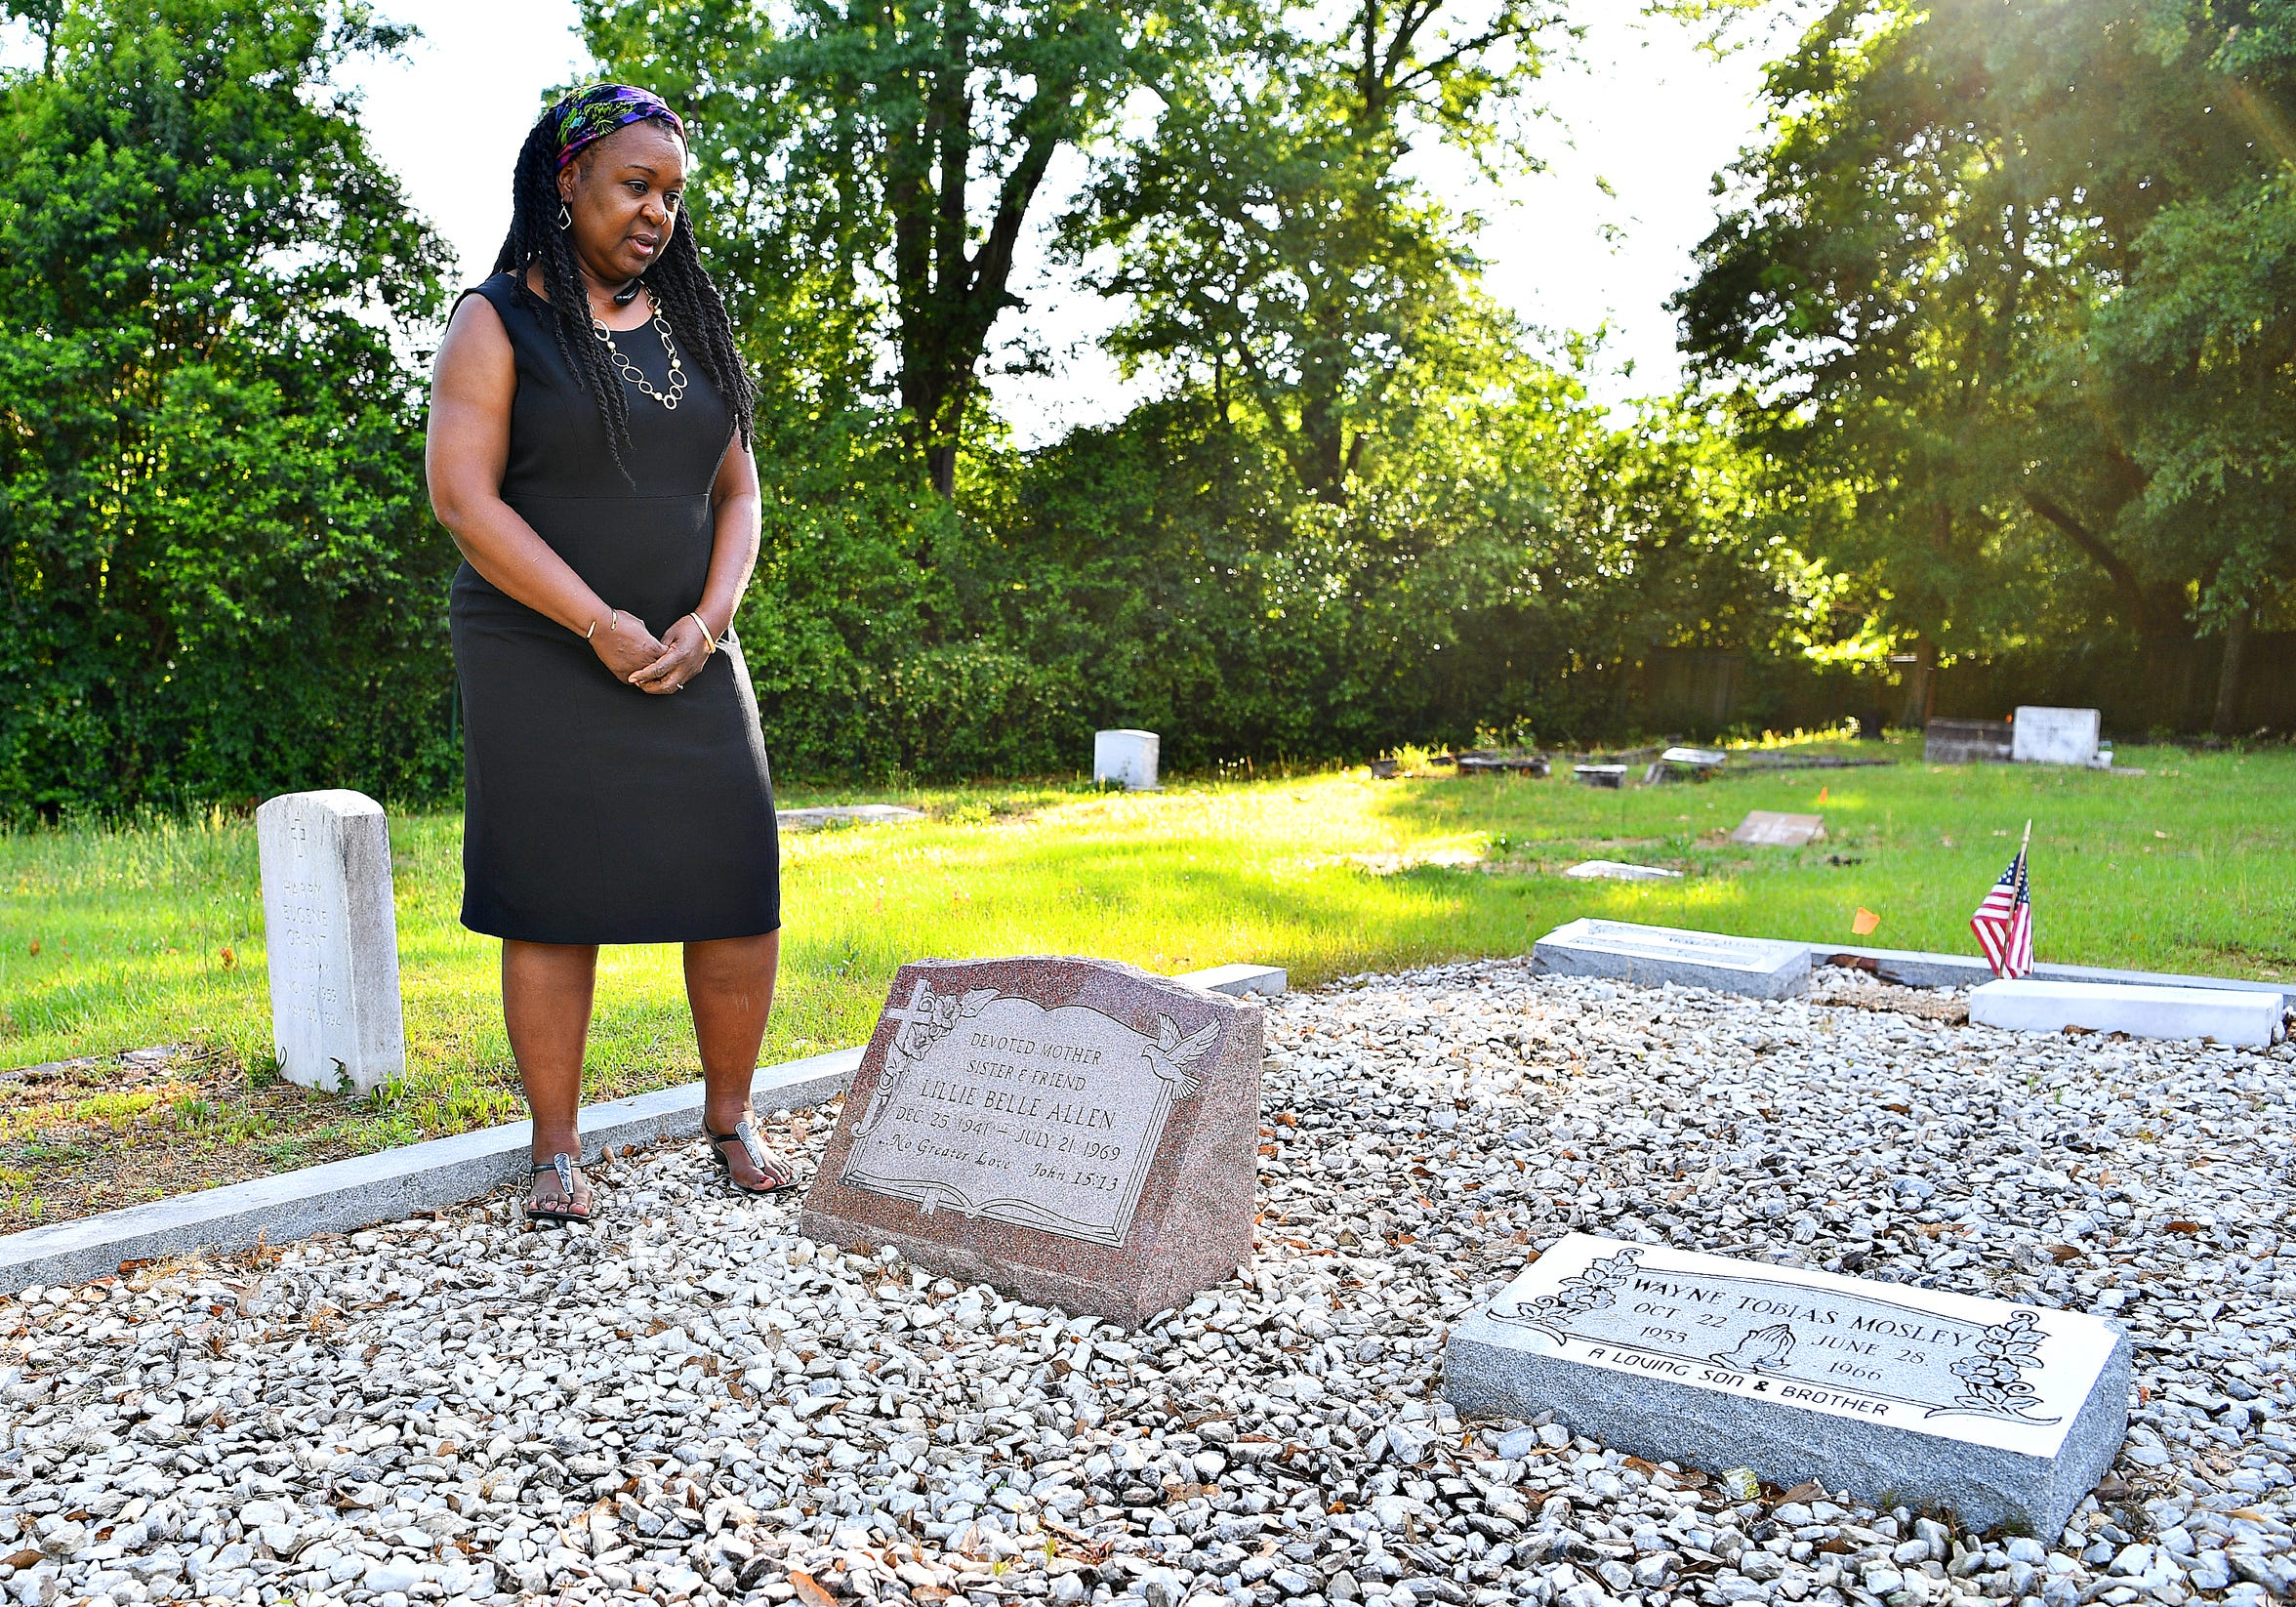 Debra Grier, 60, visits her mother's grave at Pine Lawn Cemetery in Aiken, S.C., Friday, May 3, 2019. Her mother, Lillie Belle Allen, while visiting family in York, was shot and killed during the York Riots on July 21, 1969. Dawn J. Sagert photo